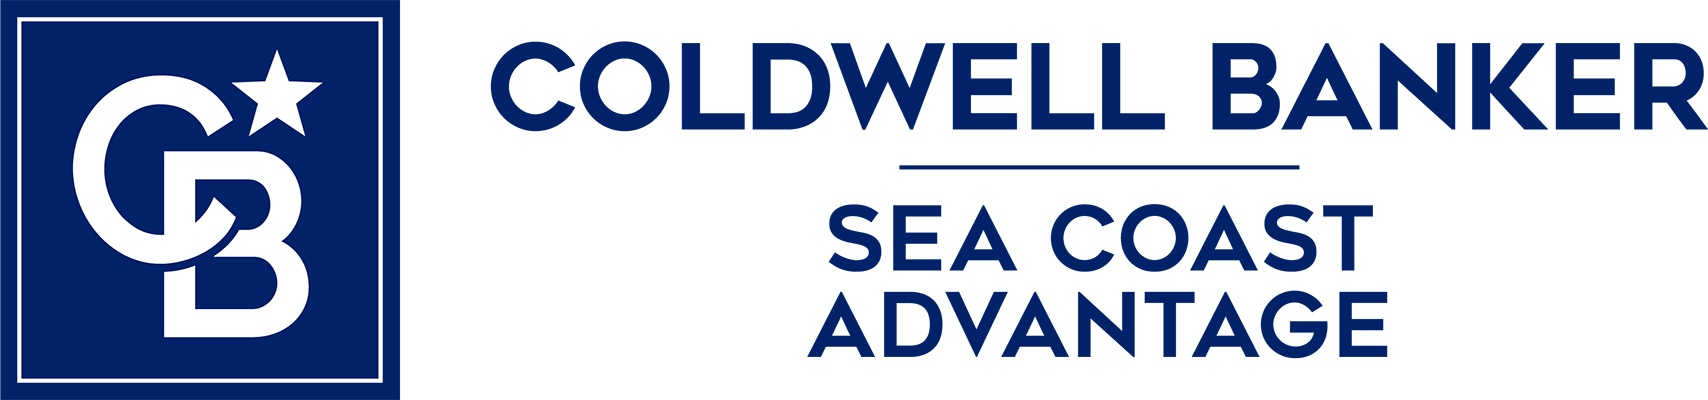 Brenden Donovan - Coldwell Banker Sea Coast Advantage Realty Logo